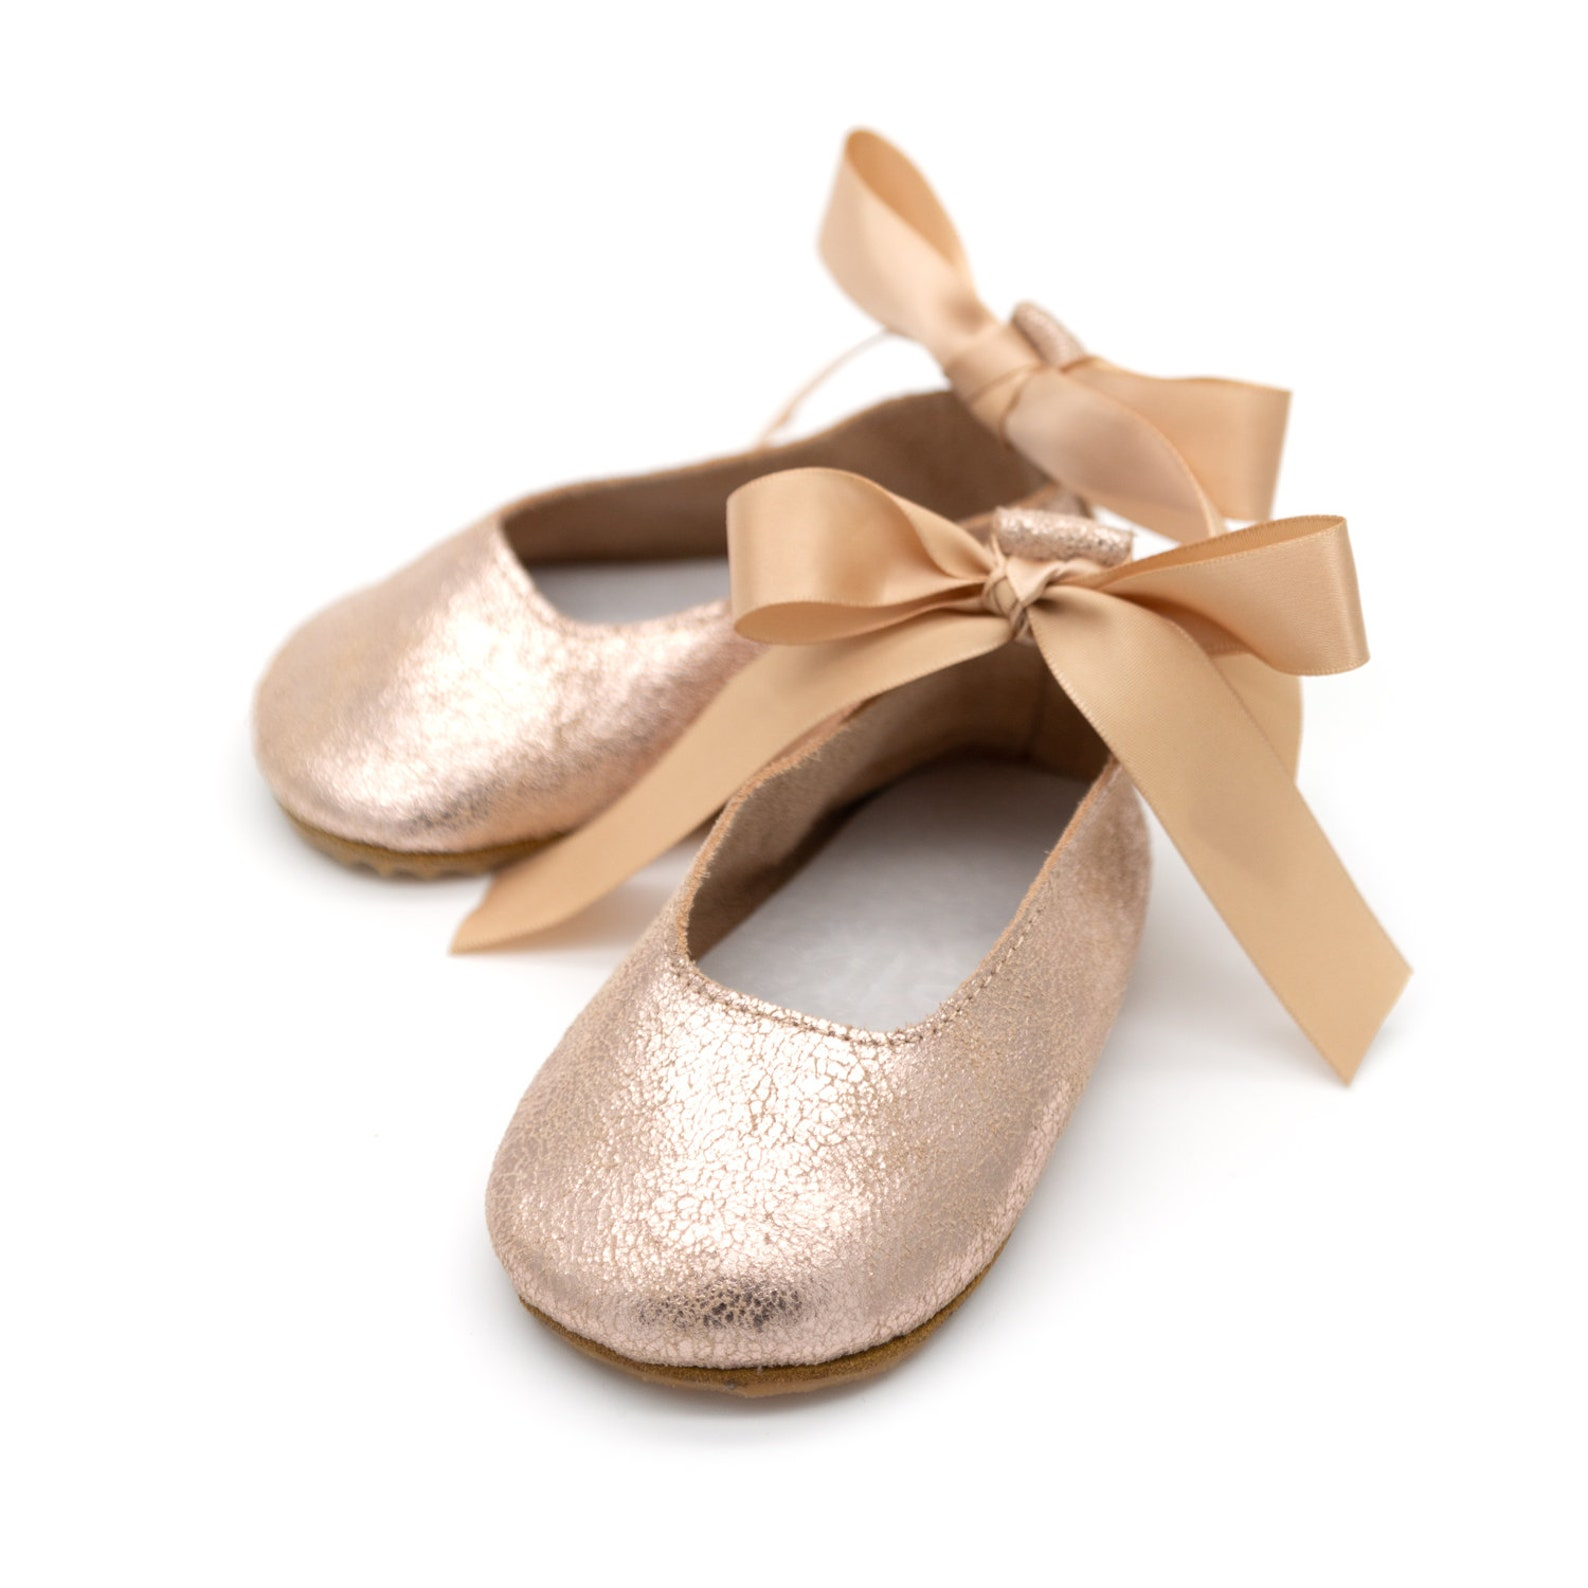 c19a1060a093 Rose Gold Baby Girl Shoes, Flower Girl, Baby Shoes, Wedding Shoes, Toddler  Shoes, Baby Moccasins, ...